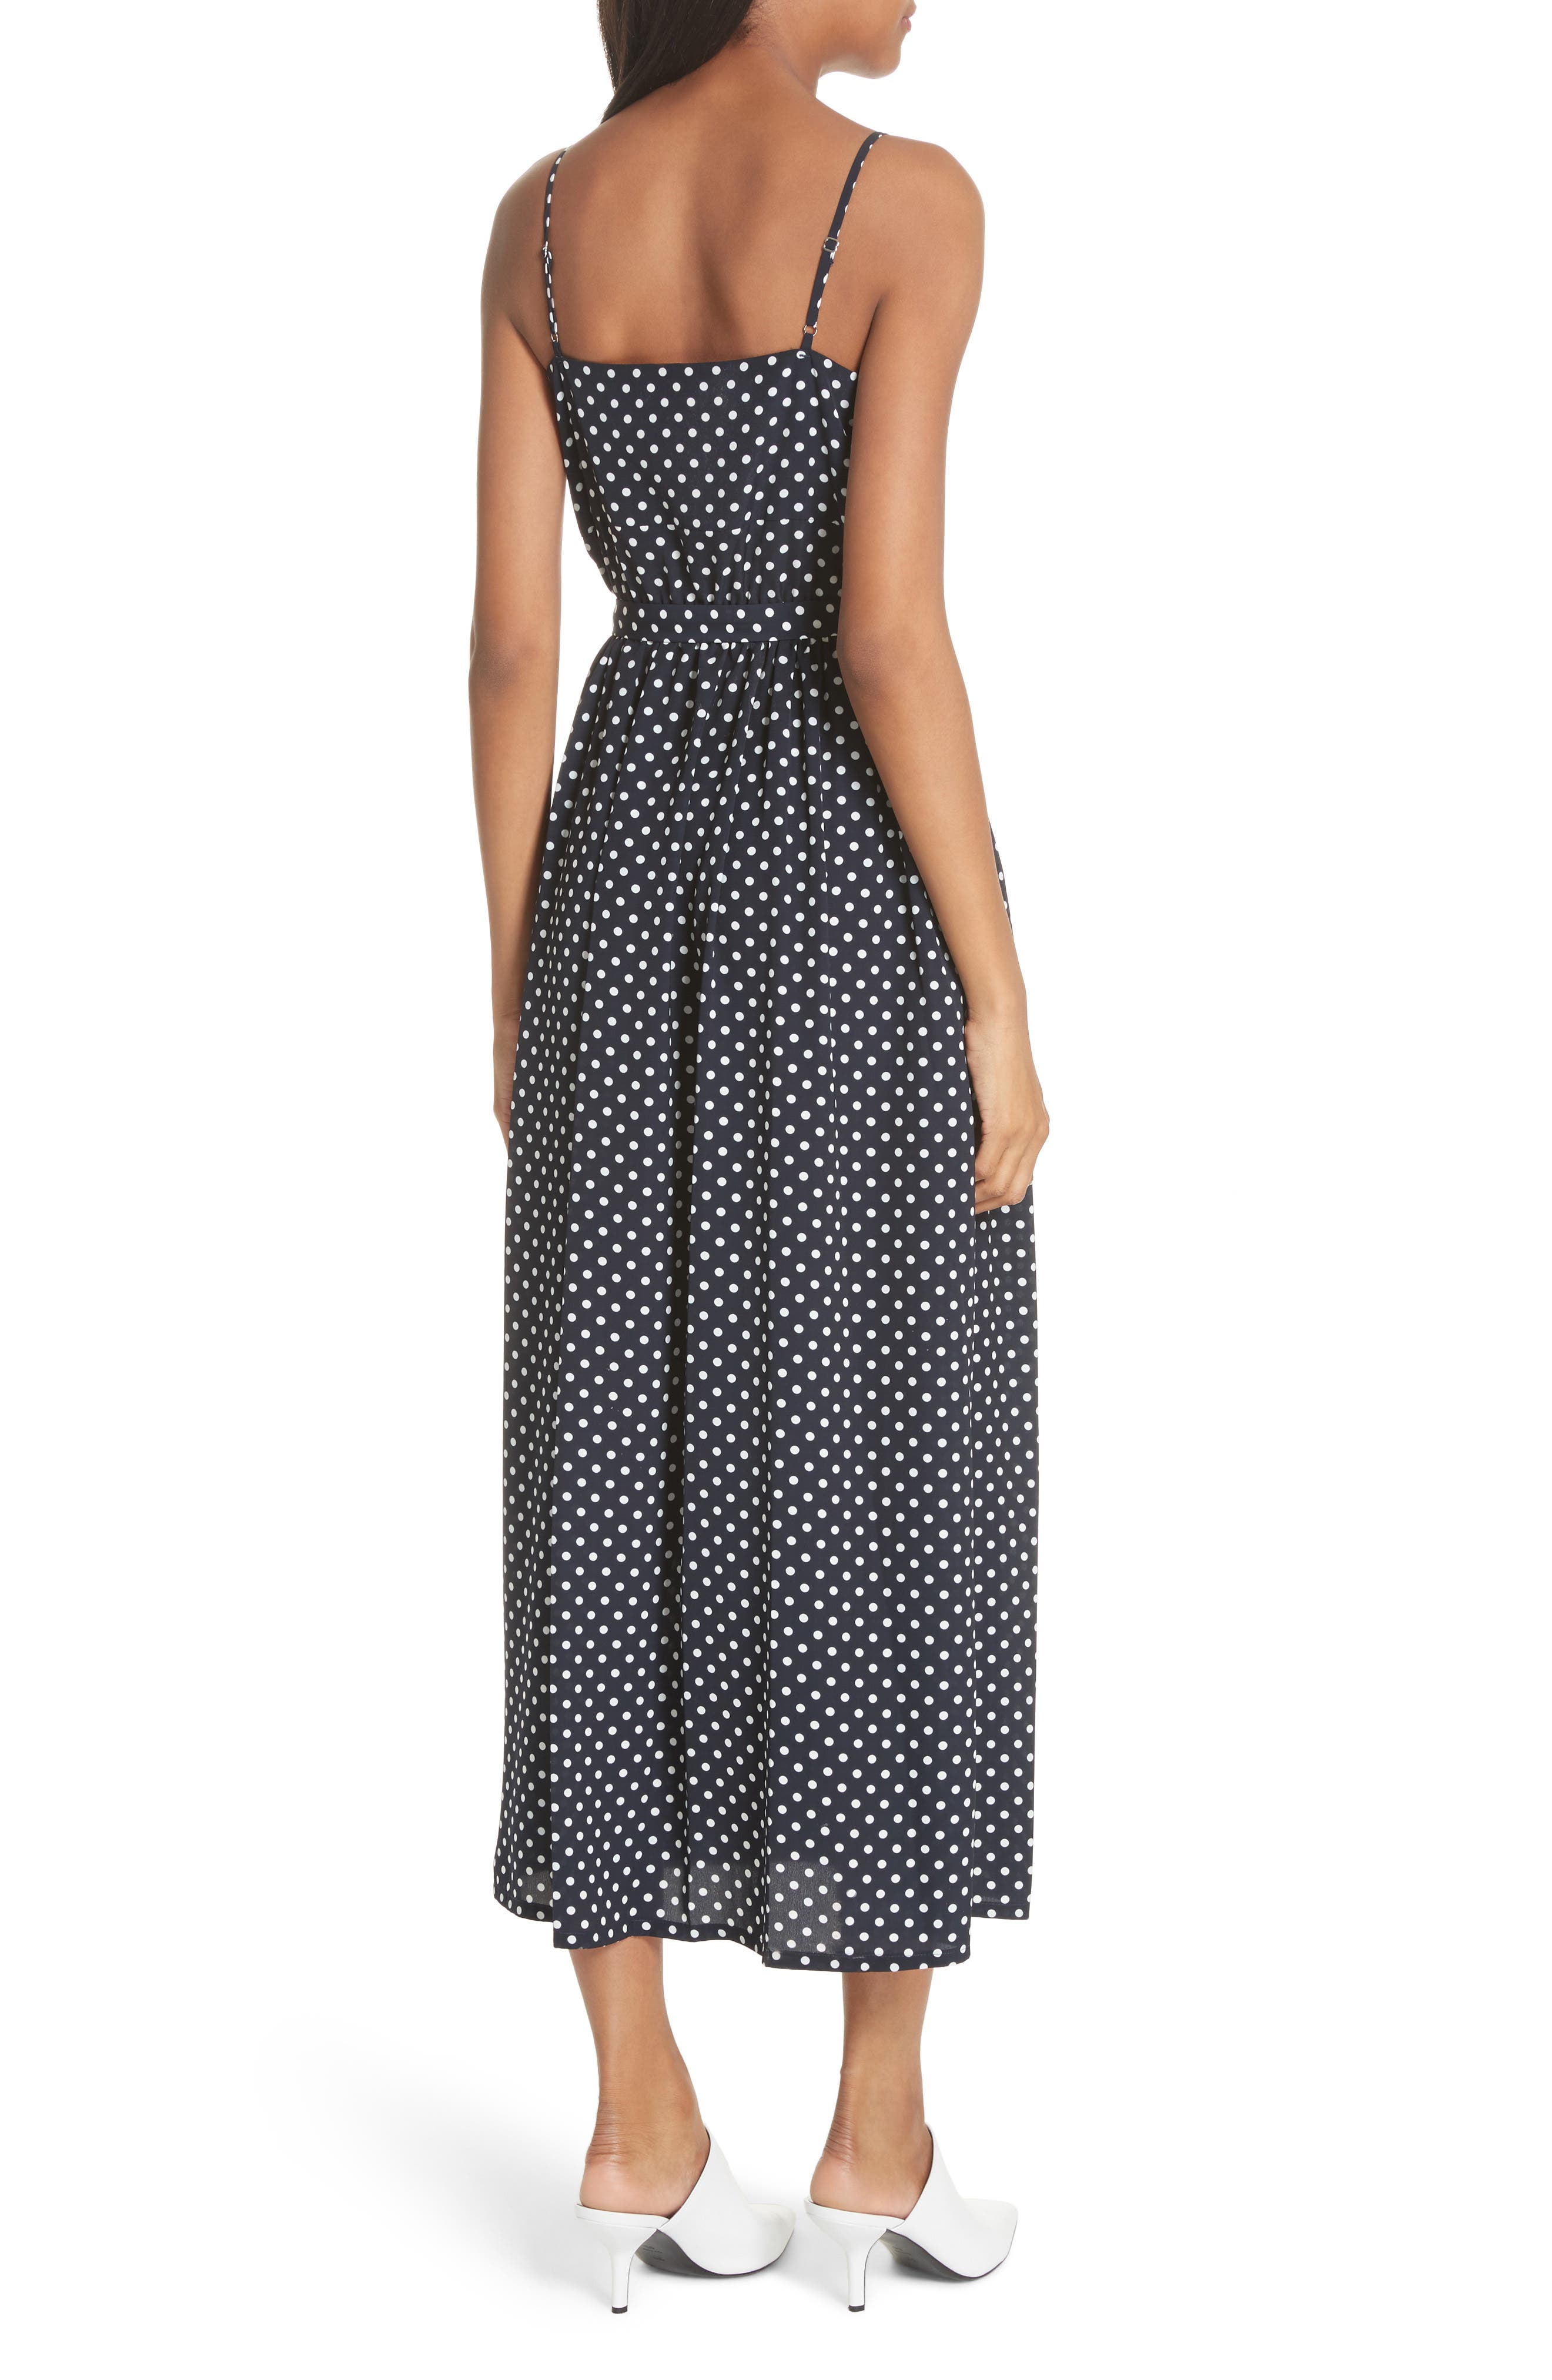 Polka Dot Midi Dress,                             Alternate thumbnail 2, color,                             410